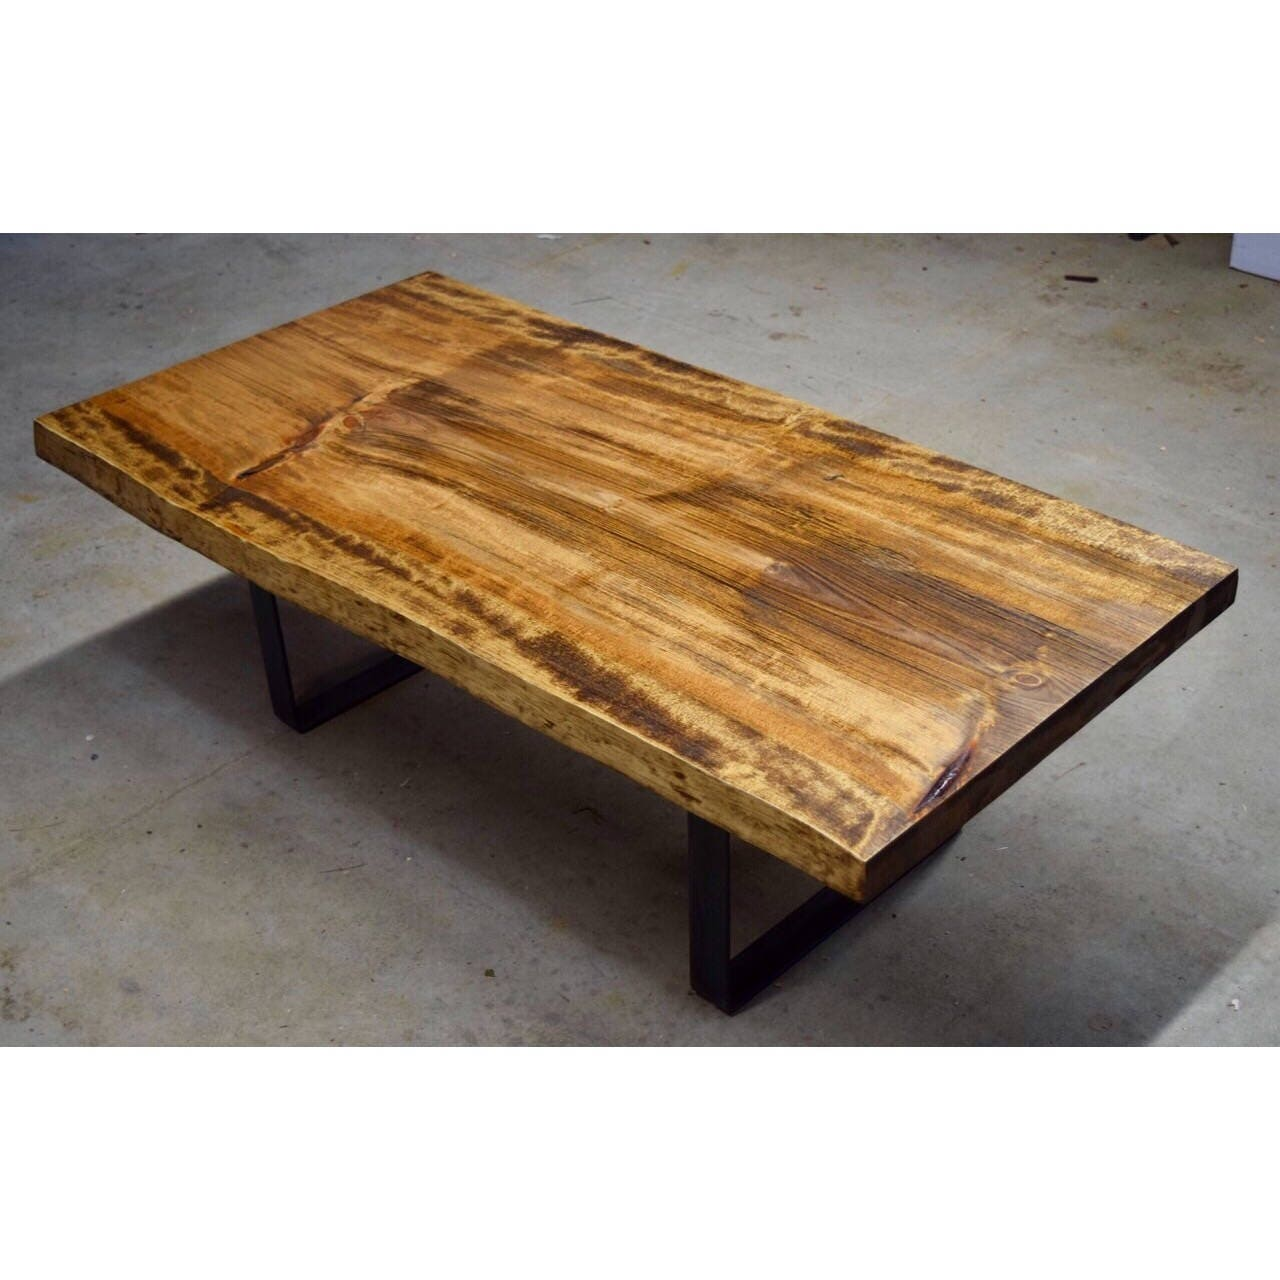 SOLD Live Edge Pine Coffee Table